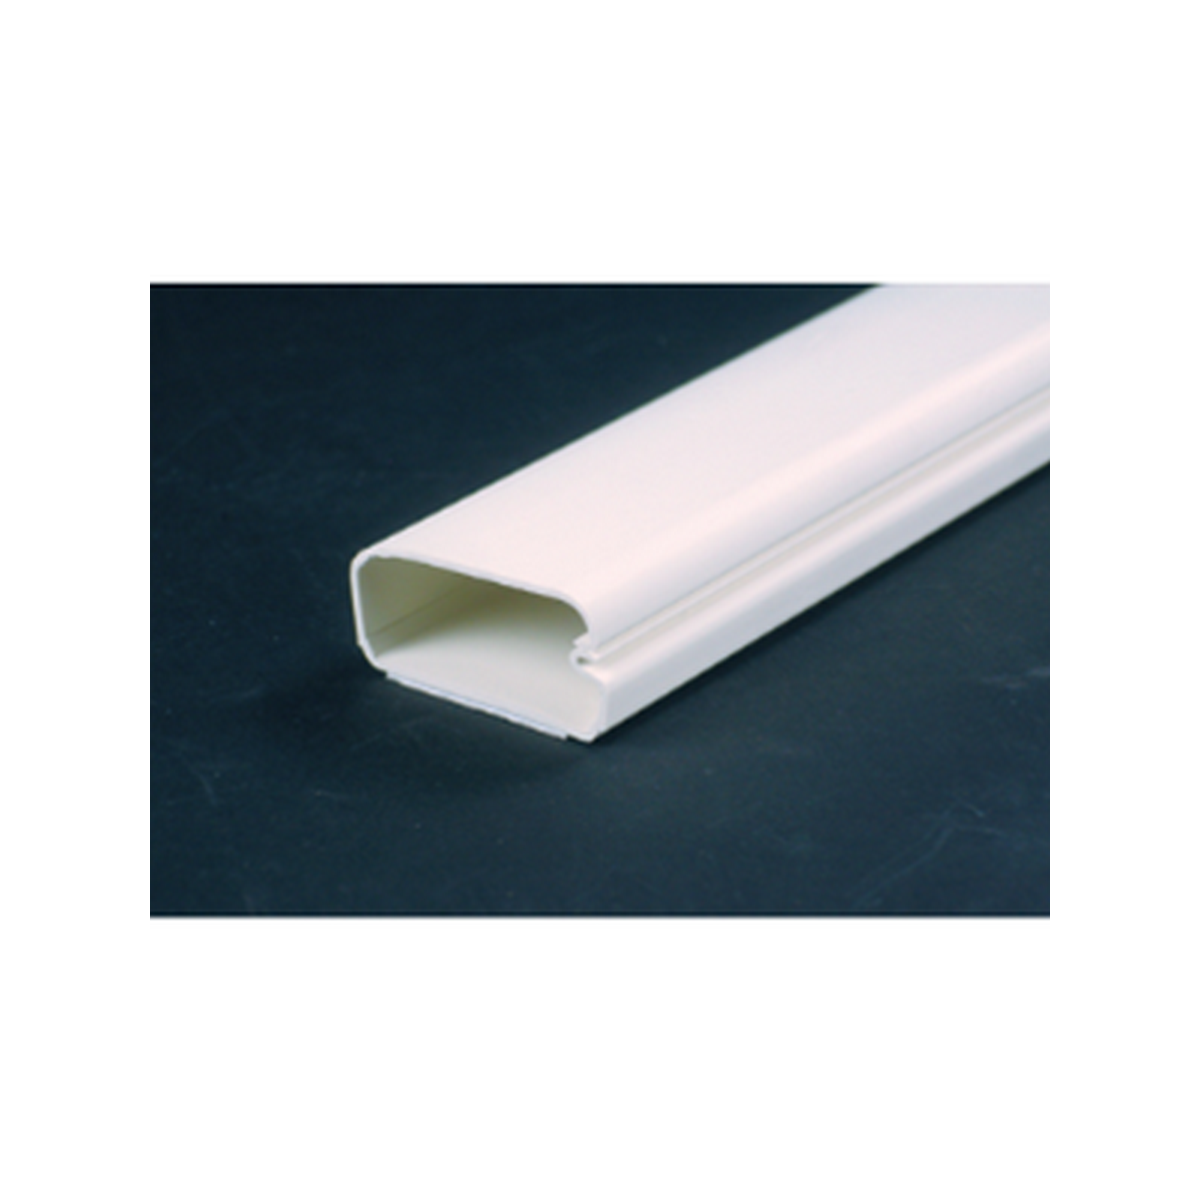 Wiremold 2900 series non-metallic latching raceway. Sold per foot - 8ft lengths, 160ft/box- white .75